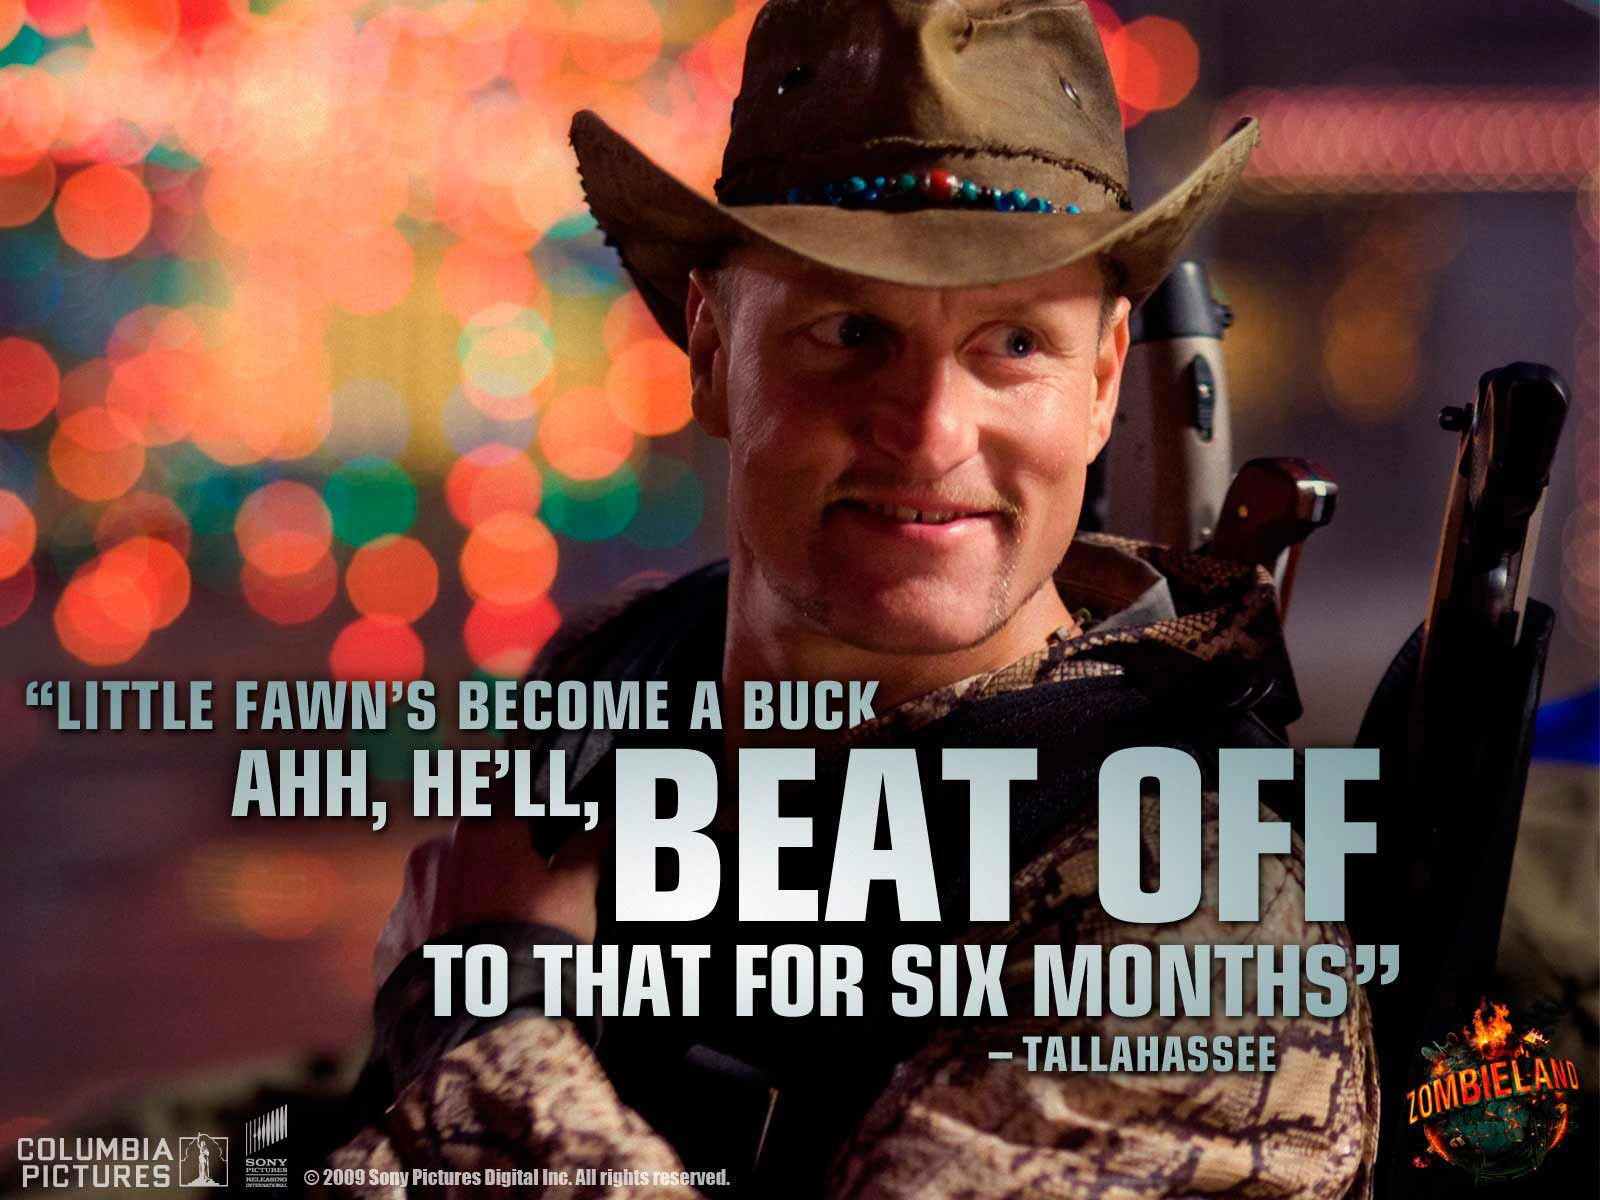 Zombieland Wallpaper Tallahassee Quotes 2 Zombieland Zombieland Movie Tallahassee